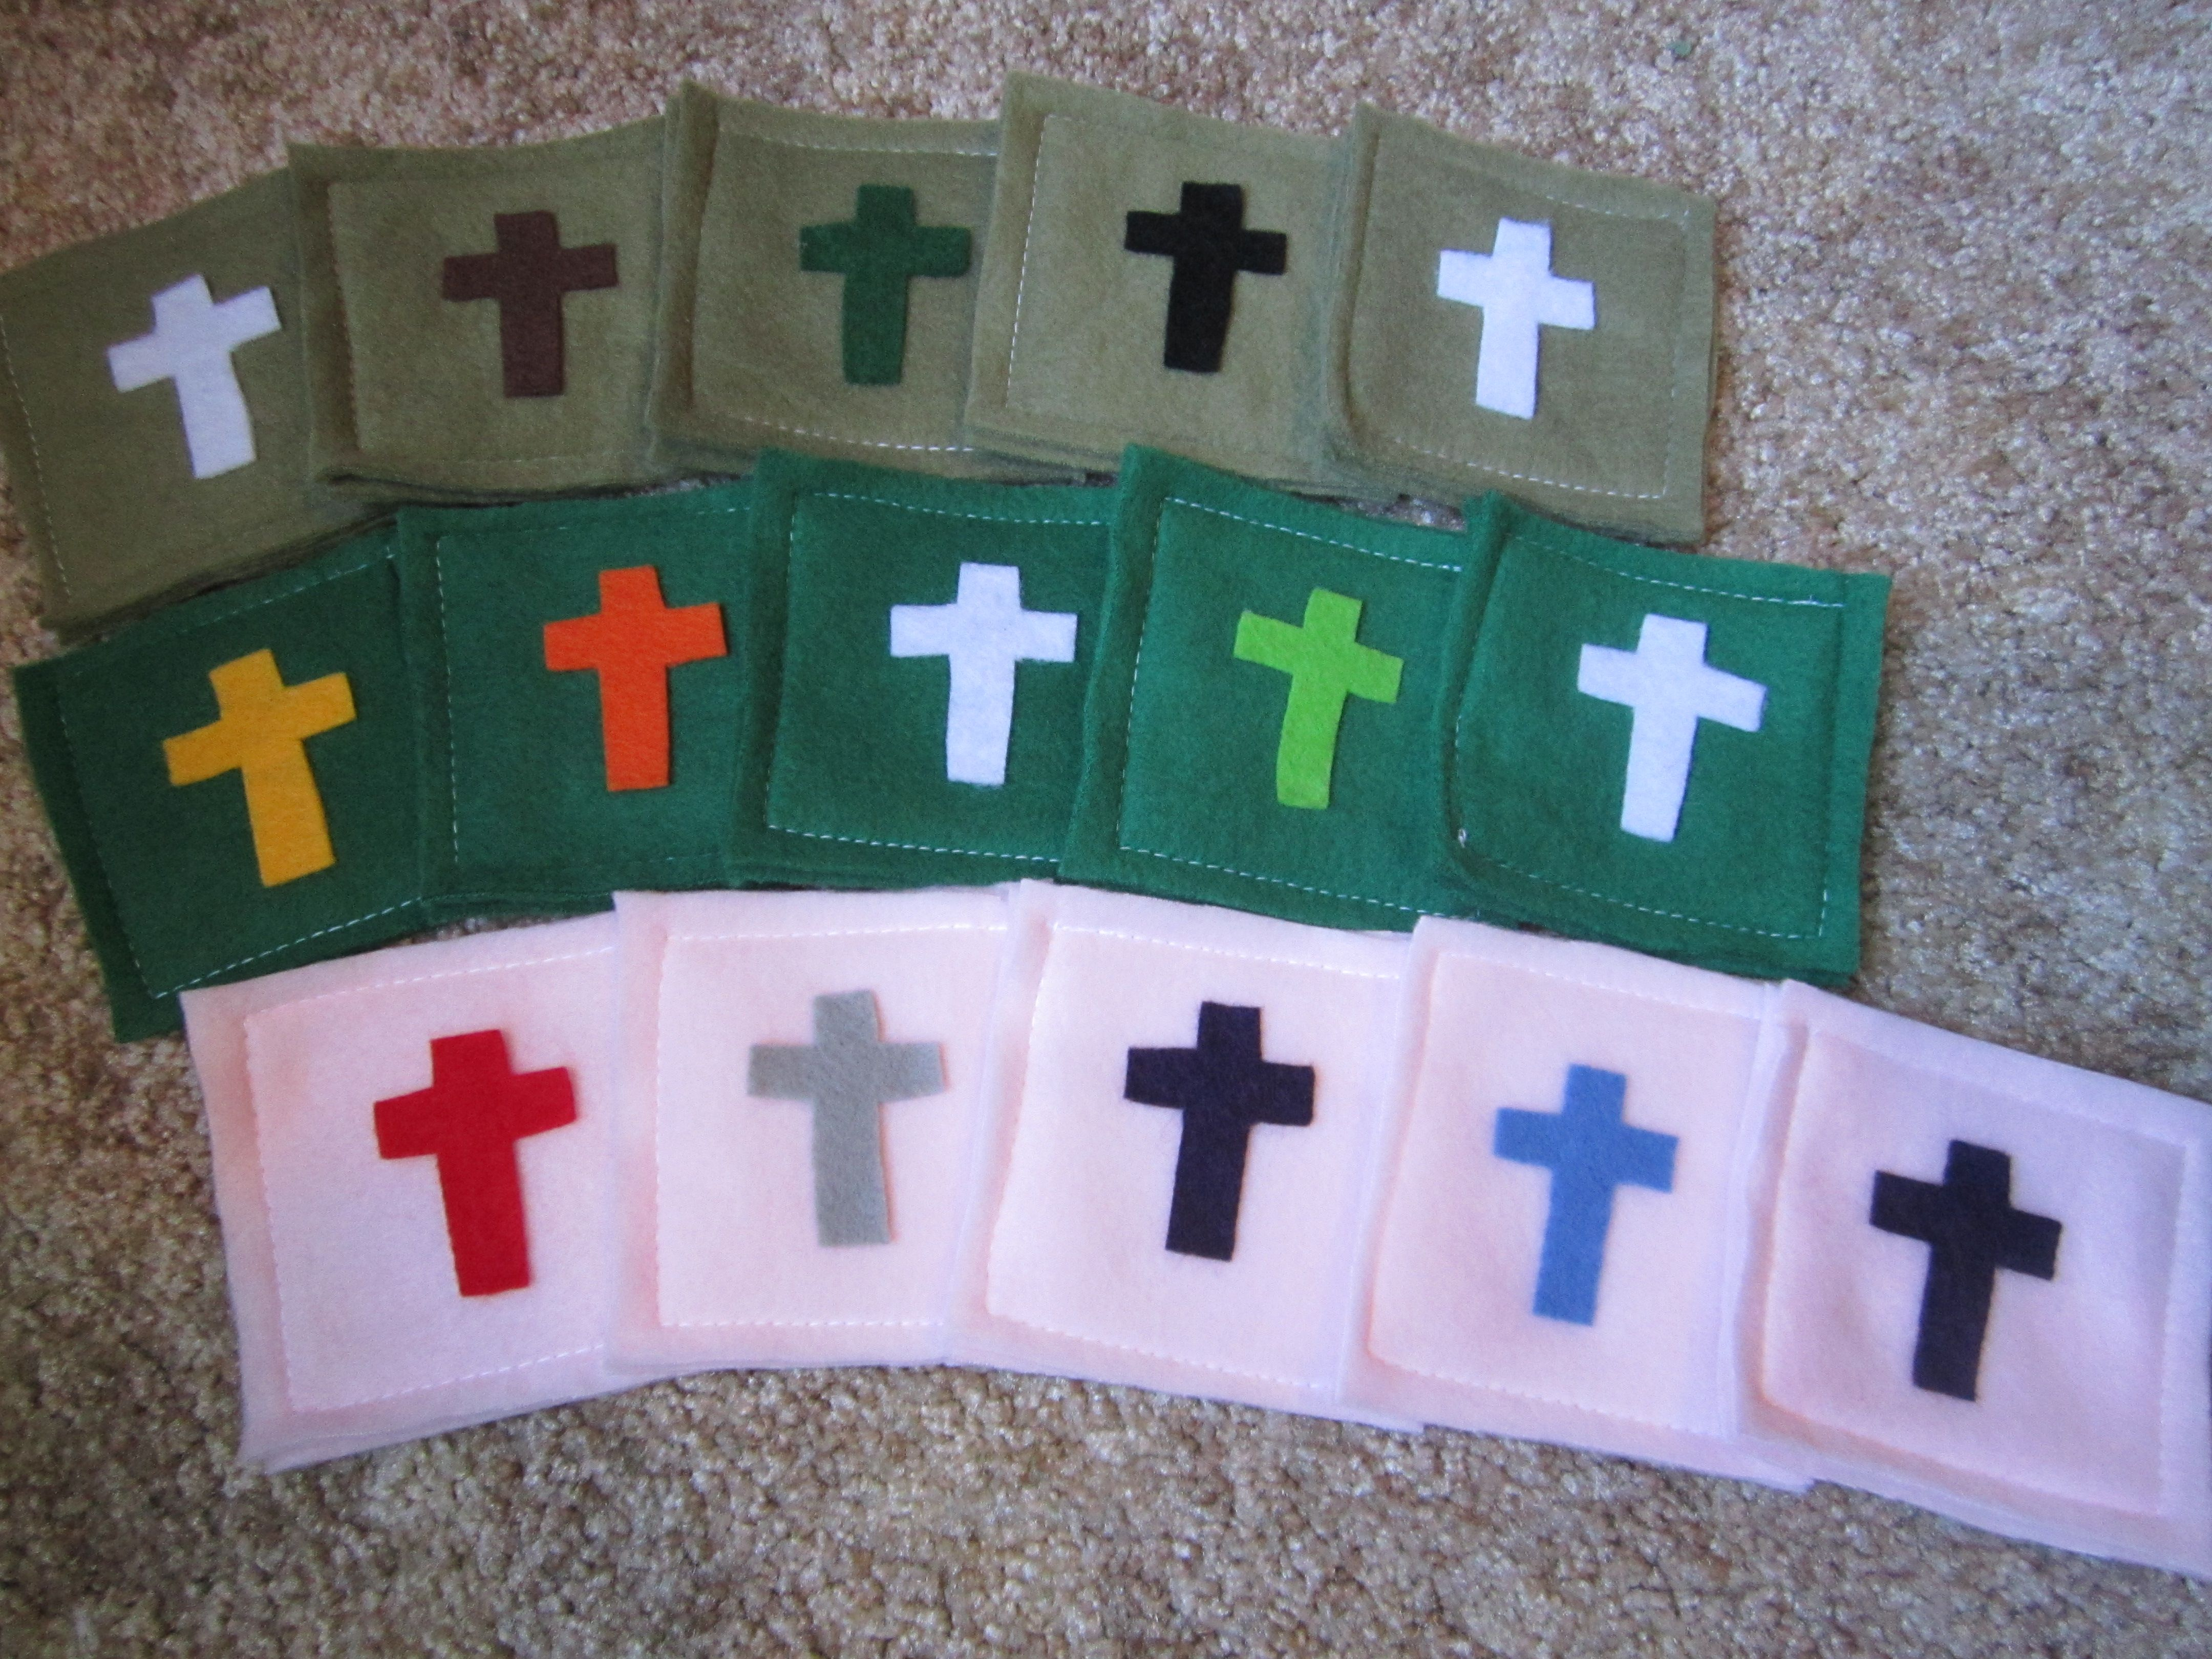 Vacation bible school crafts ideas - Comfort Squares Are A Simple Craft Idea For A Sunday School Lesson Or Children S Sermon About